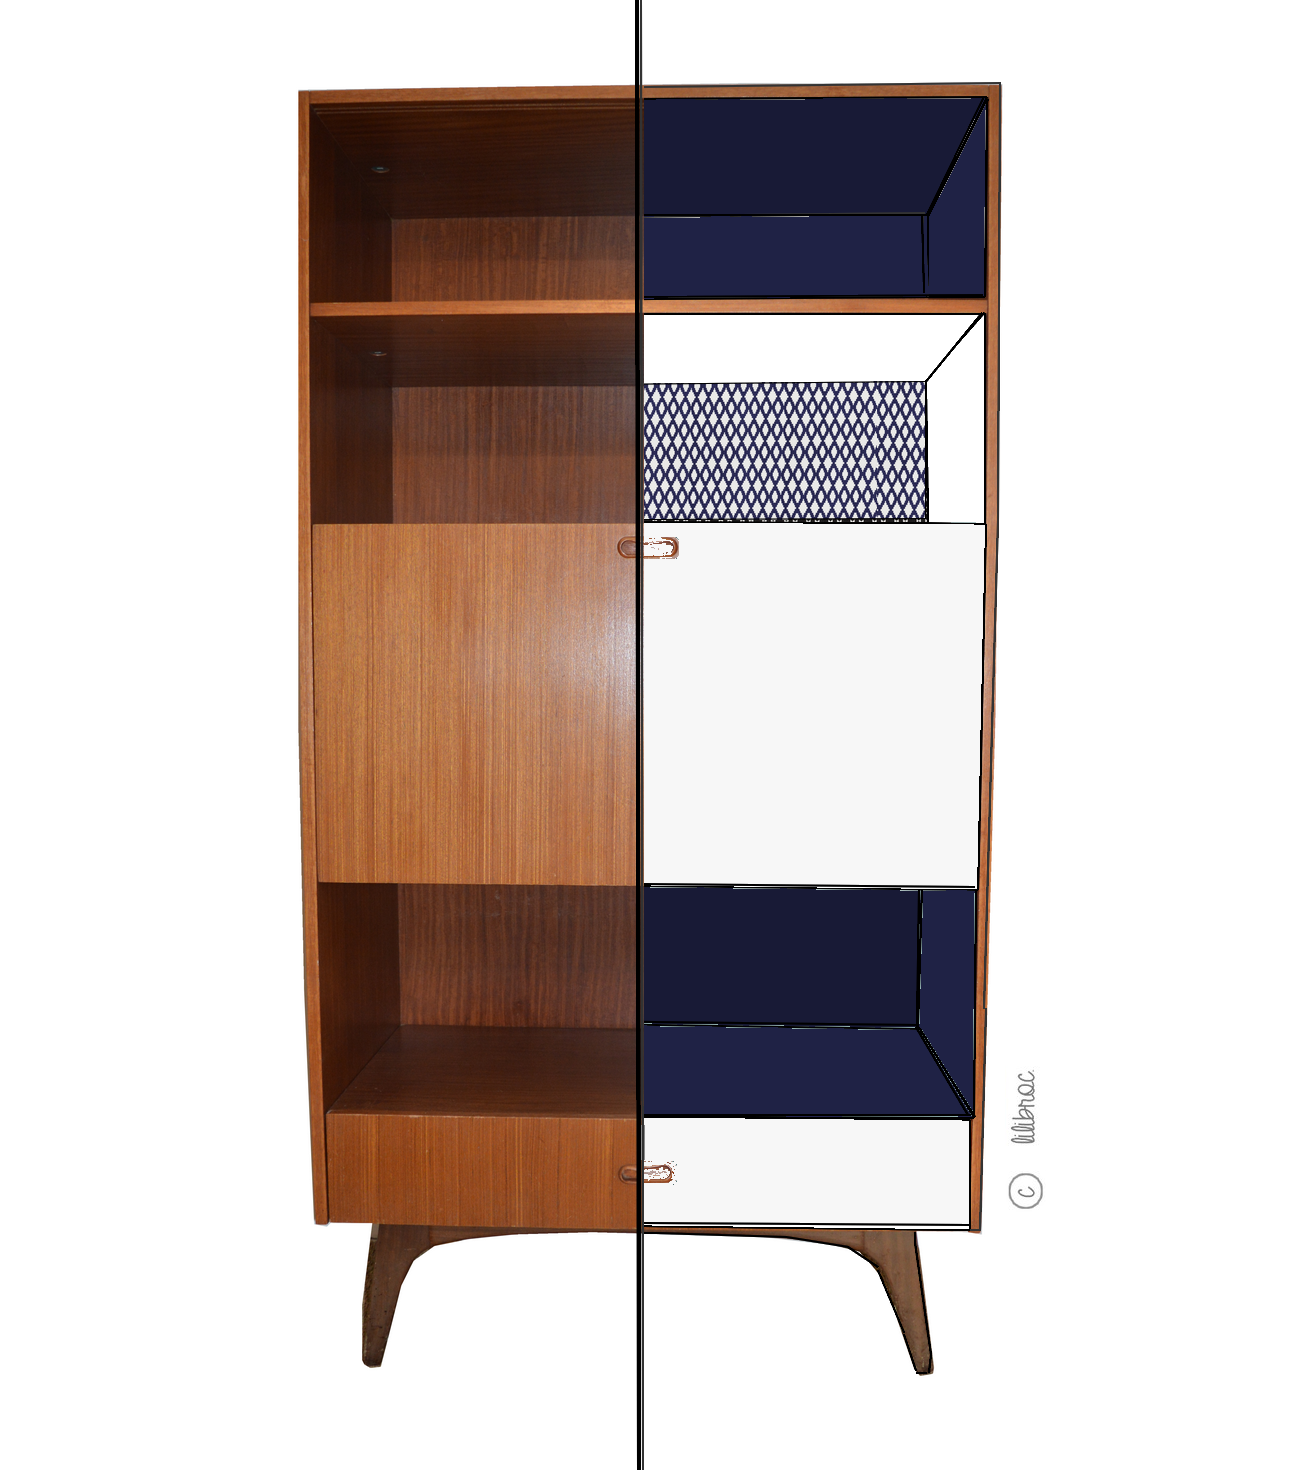 meuble secretaire bibliotheque conceptions de maison. Black Bedroom Furniture Sets. Home Design Ideas